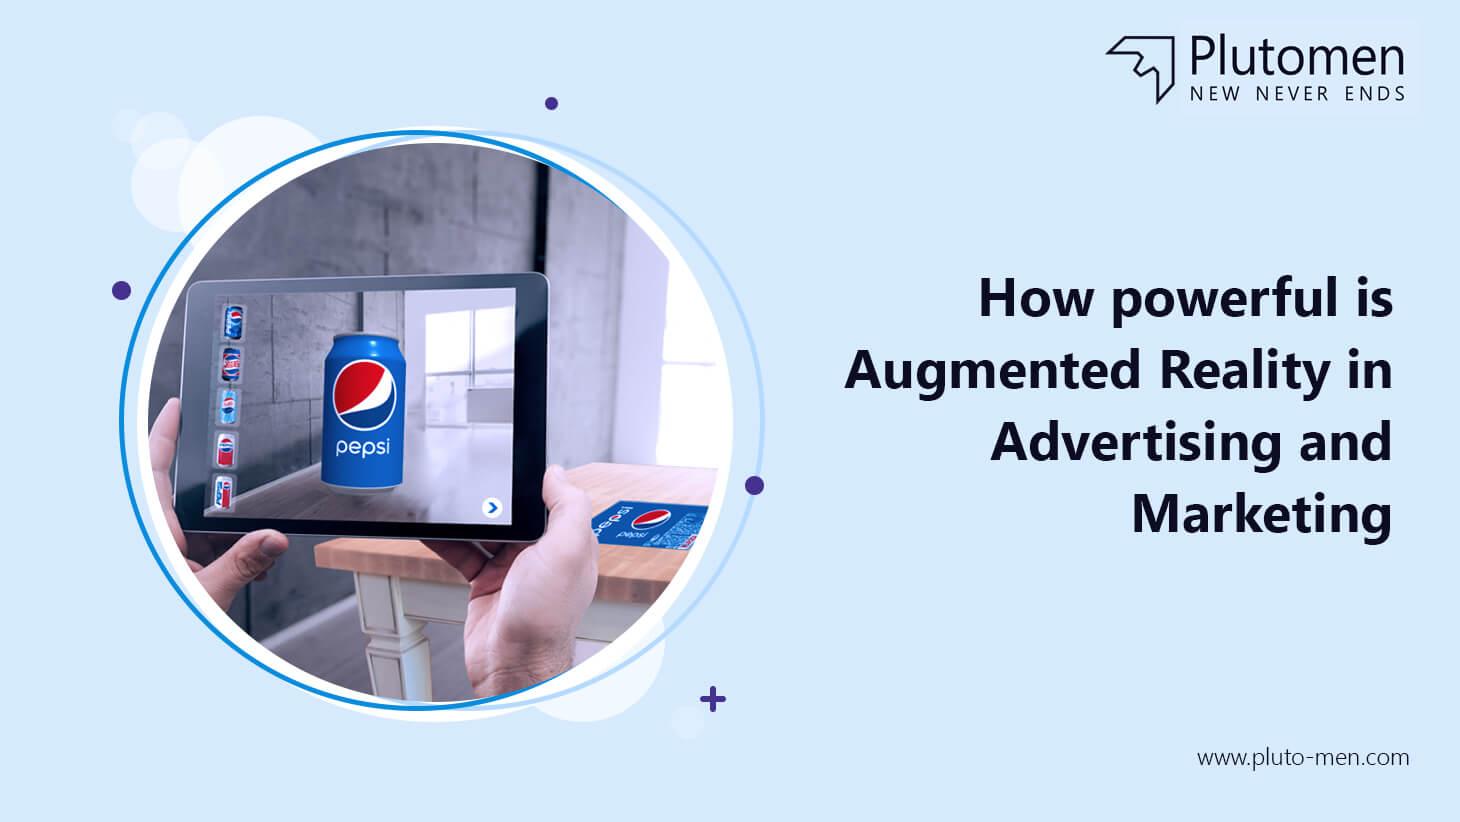 How powerful is Augmented Reality in Advertising and Marketing